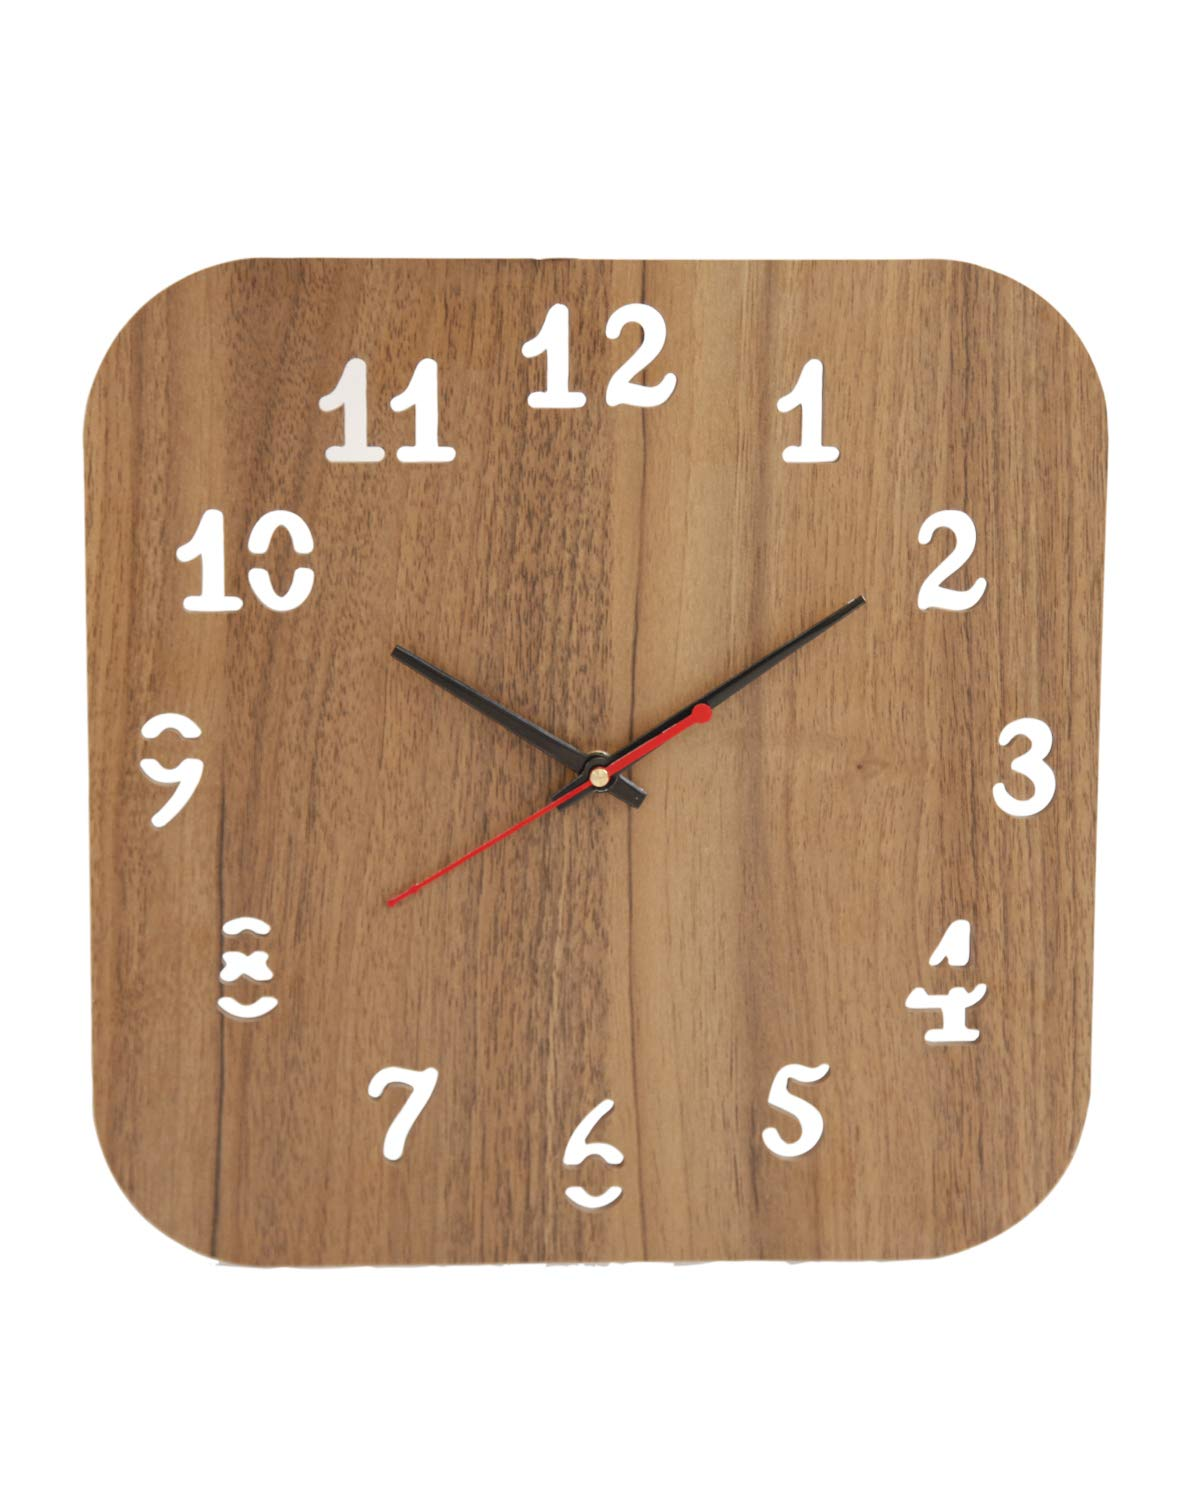 Ptako  Square Shape Wooden Wall Clock for Home